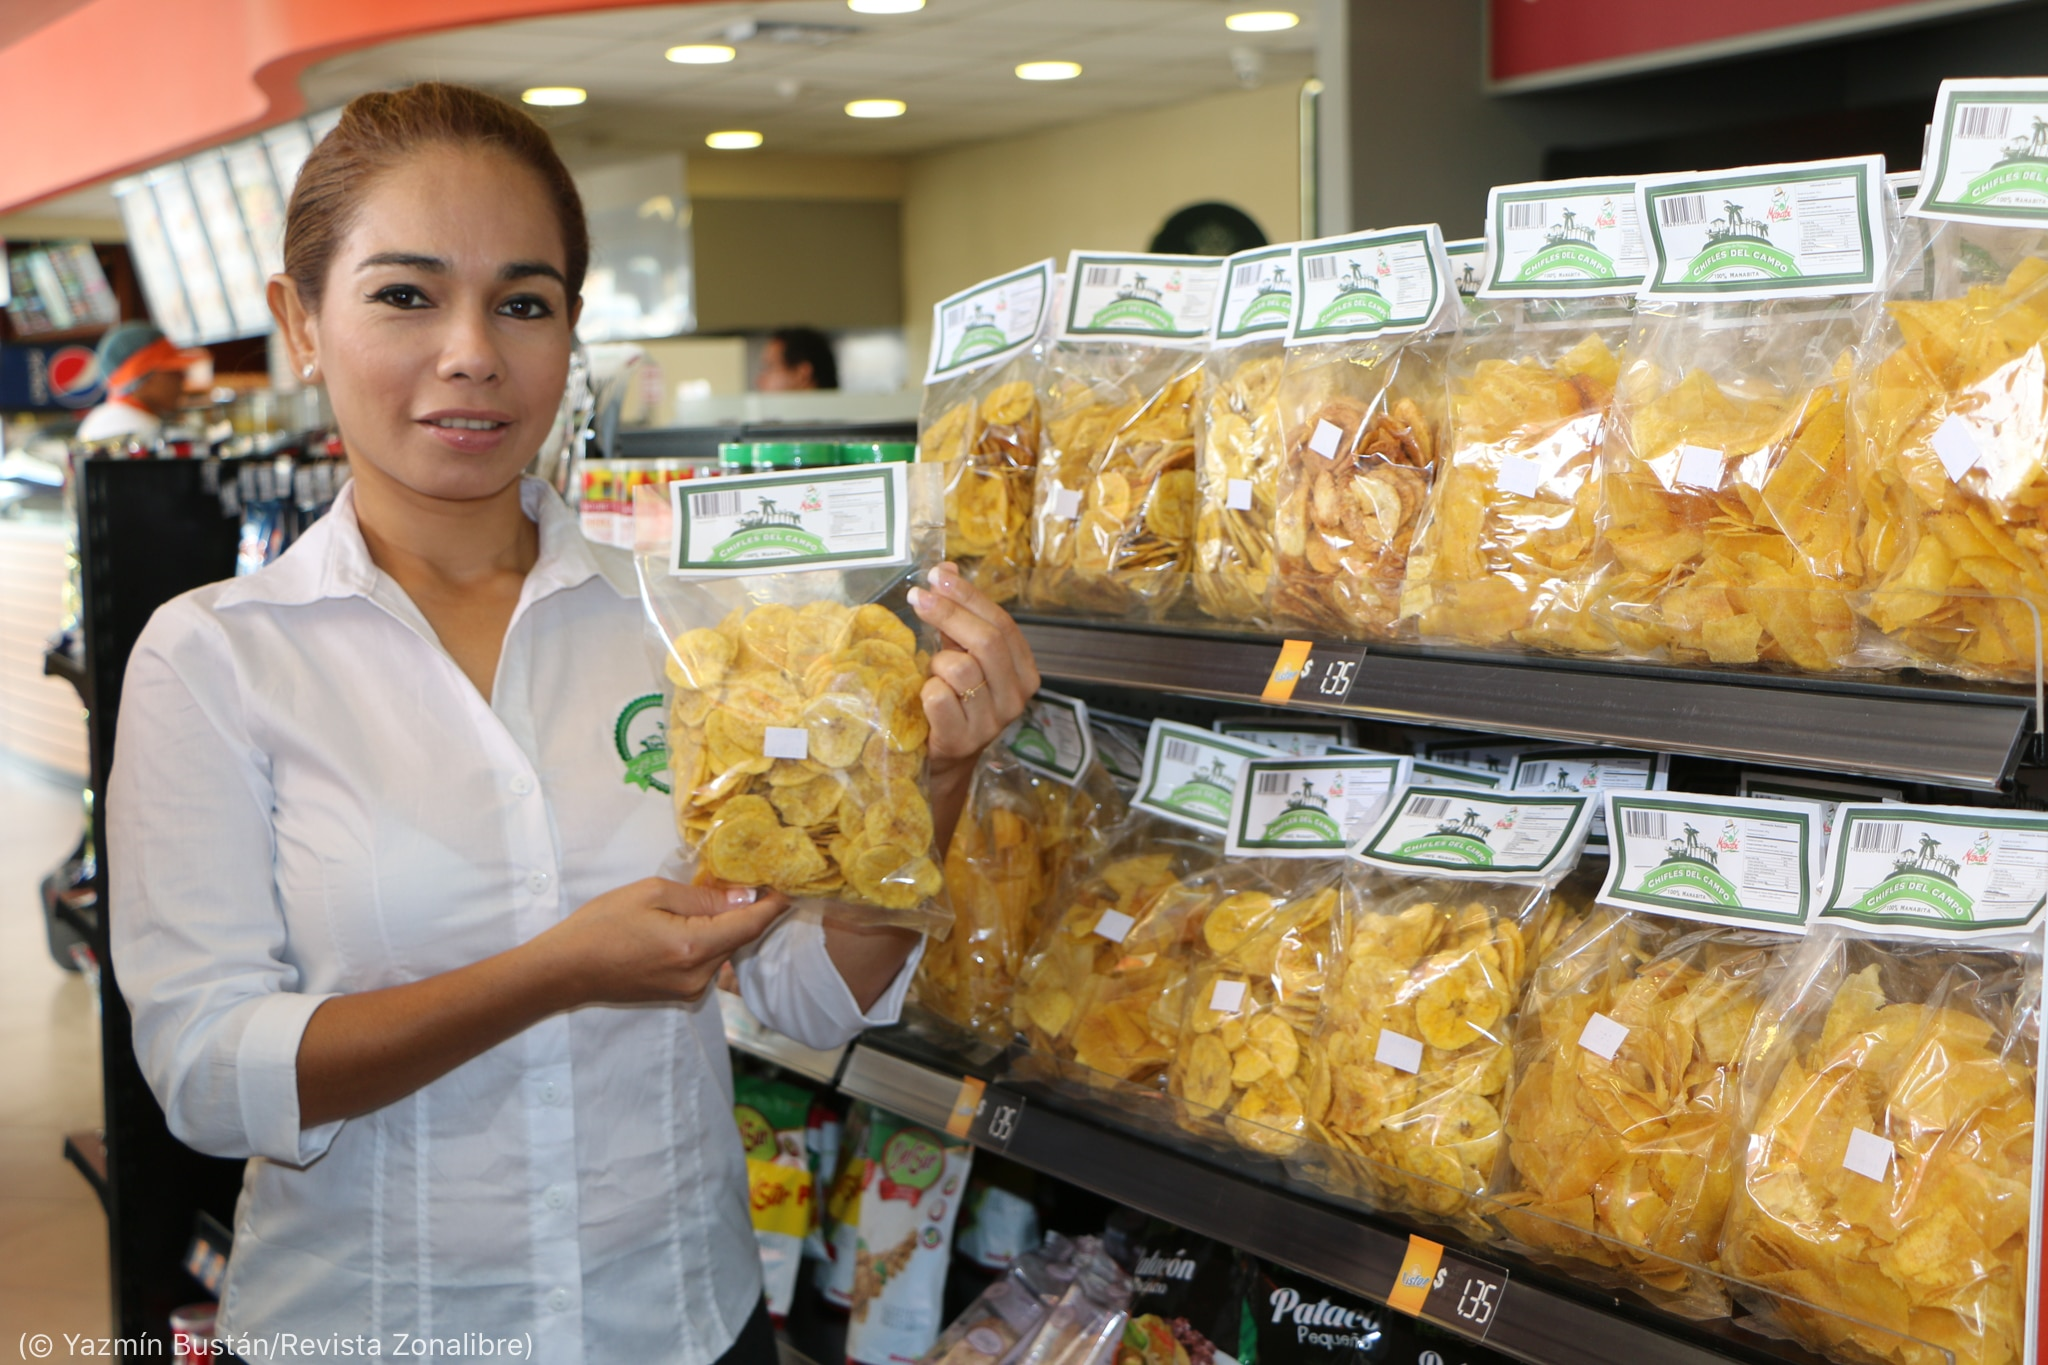 Woman holding bag of plantain chips and standing next to rack of chips in grocery store (© Yazmín Bustán/Revista Zonalibre)